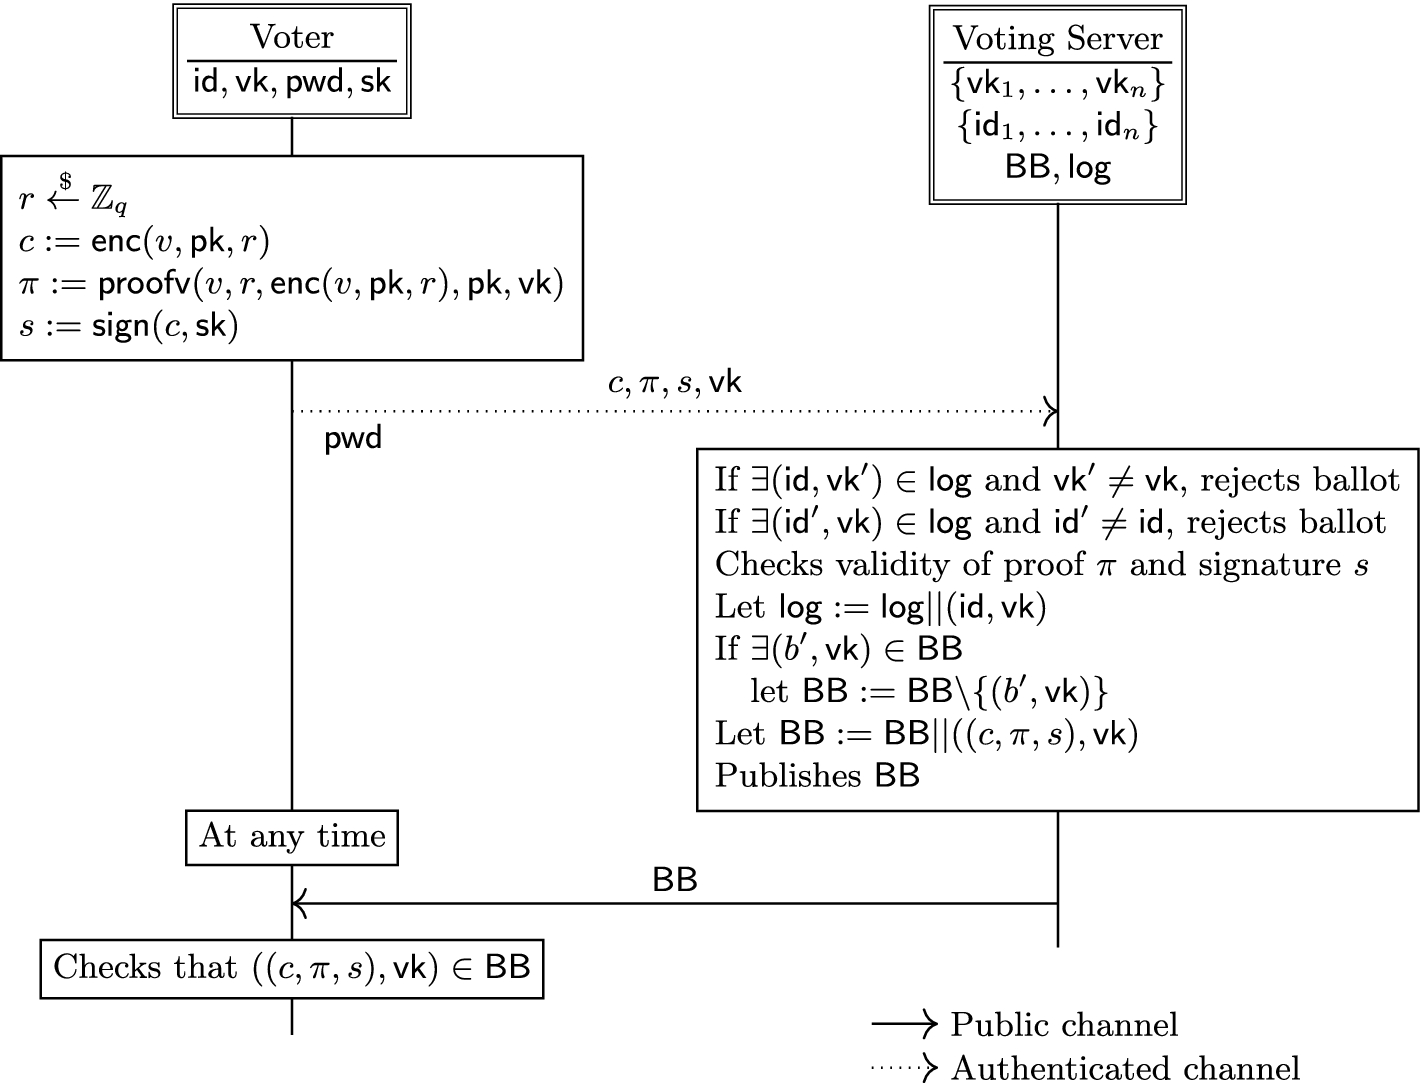 Belenios: A Simple Private and Verifiable Electronic Voting